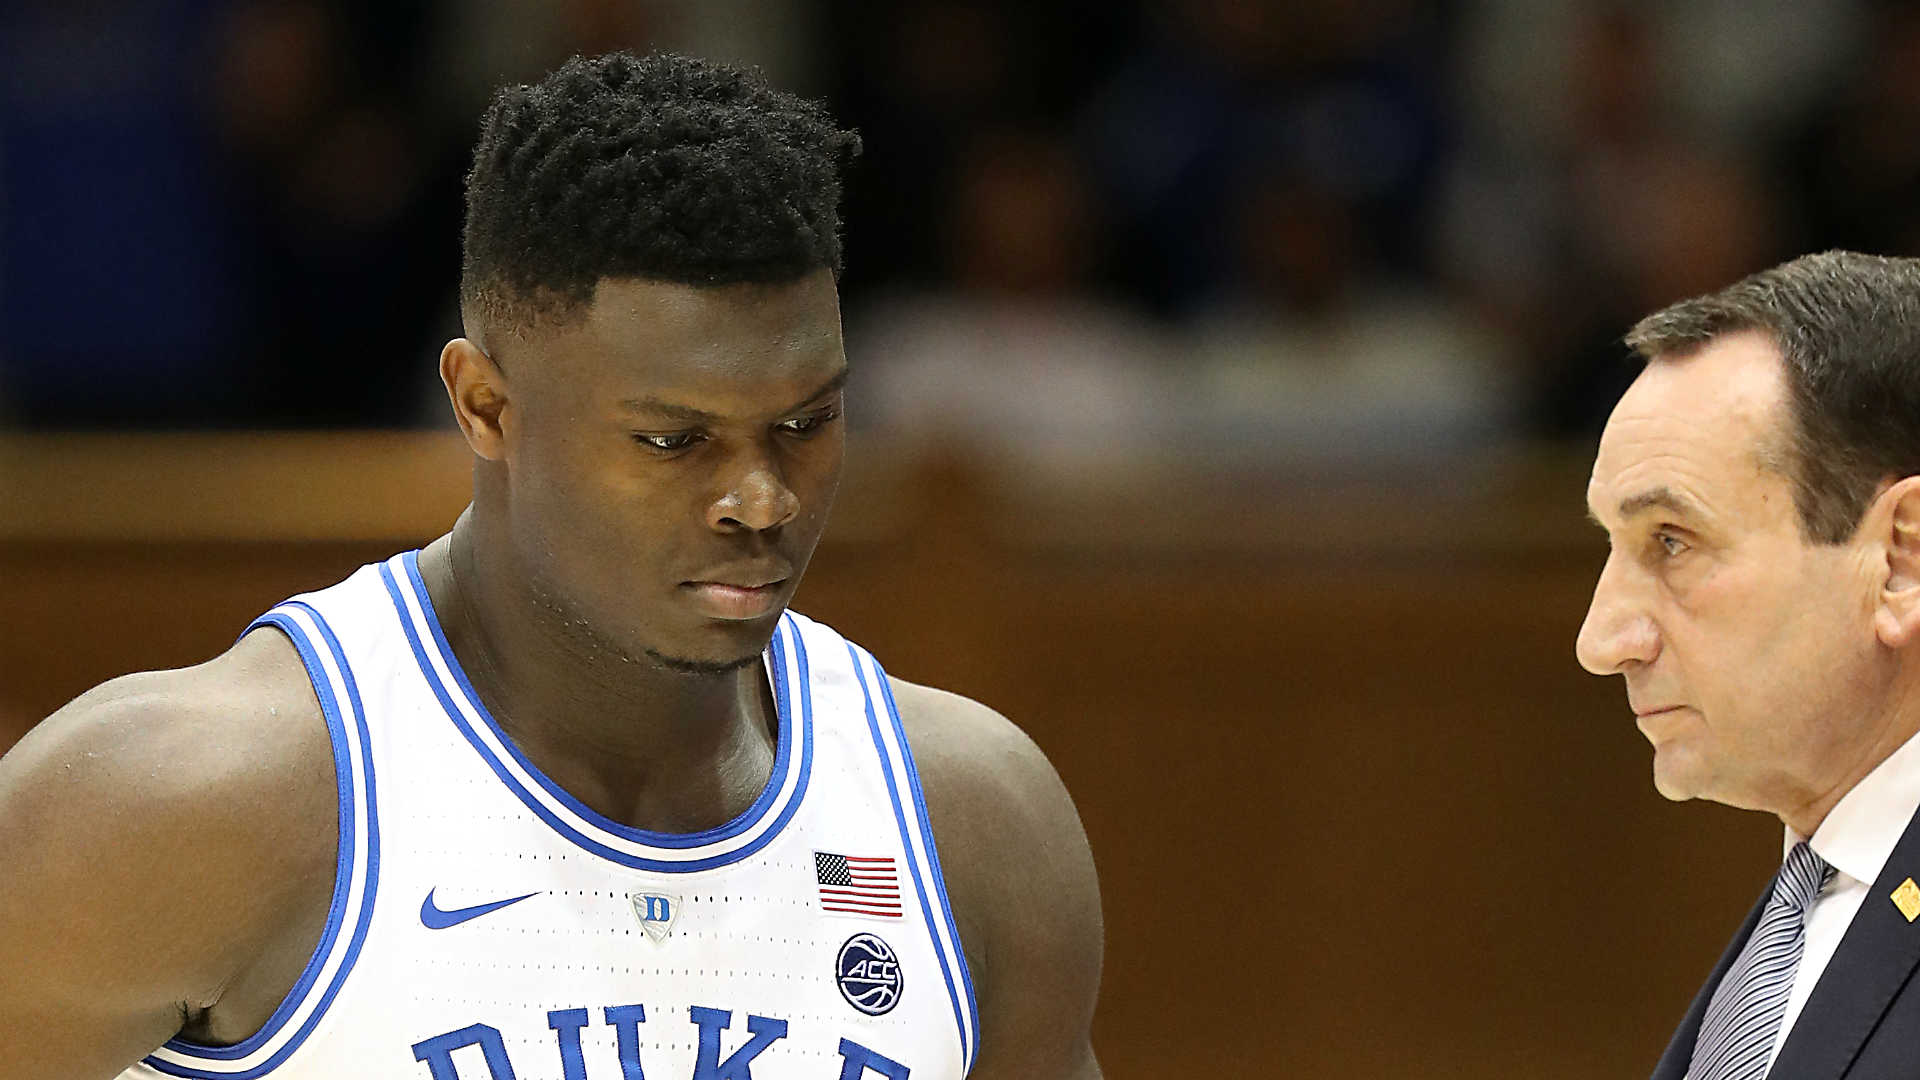 efec2bde085 Calls for Zion Williamson to  shut it down  at Duke are irrational ...